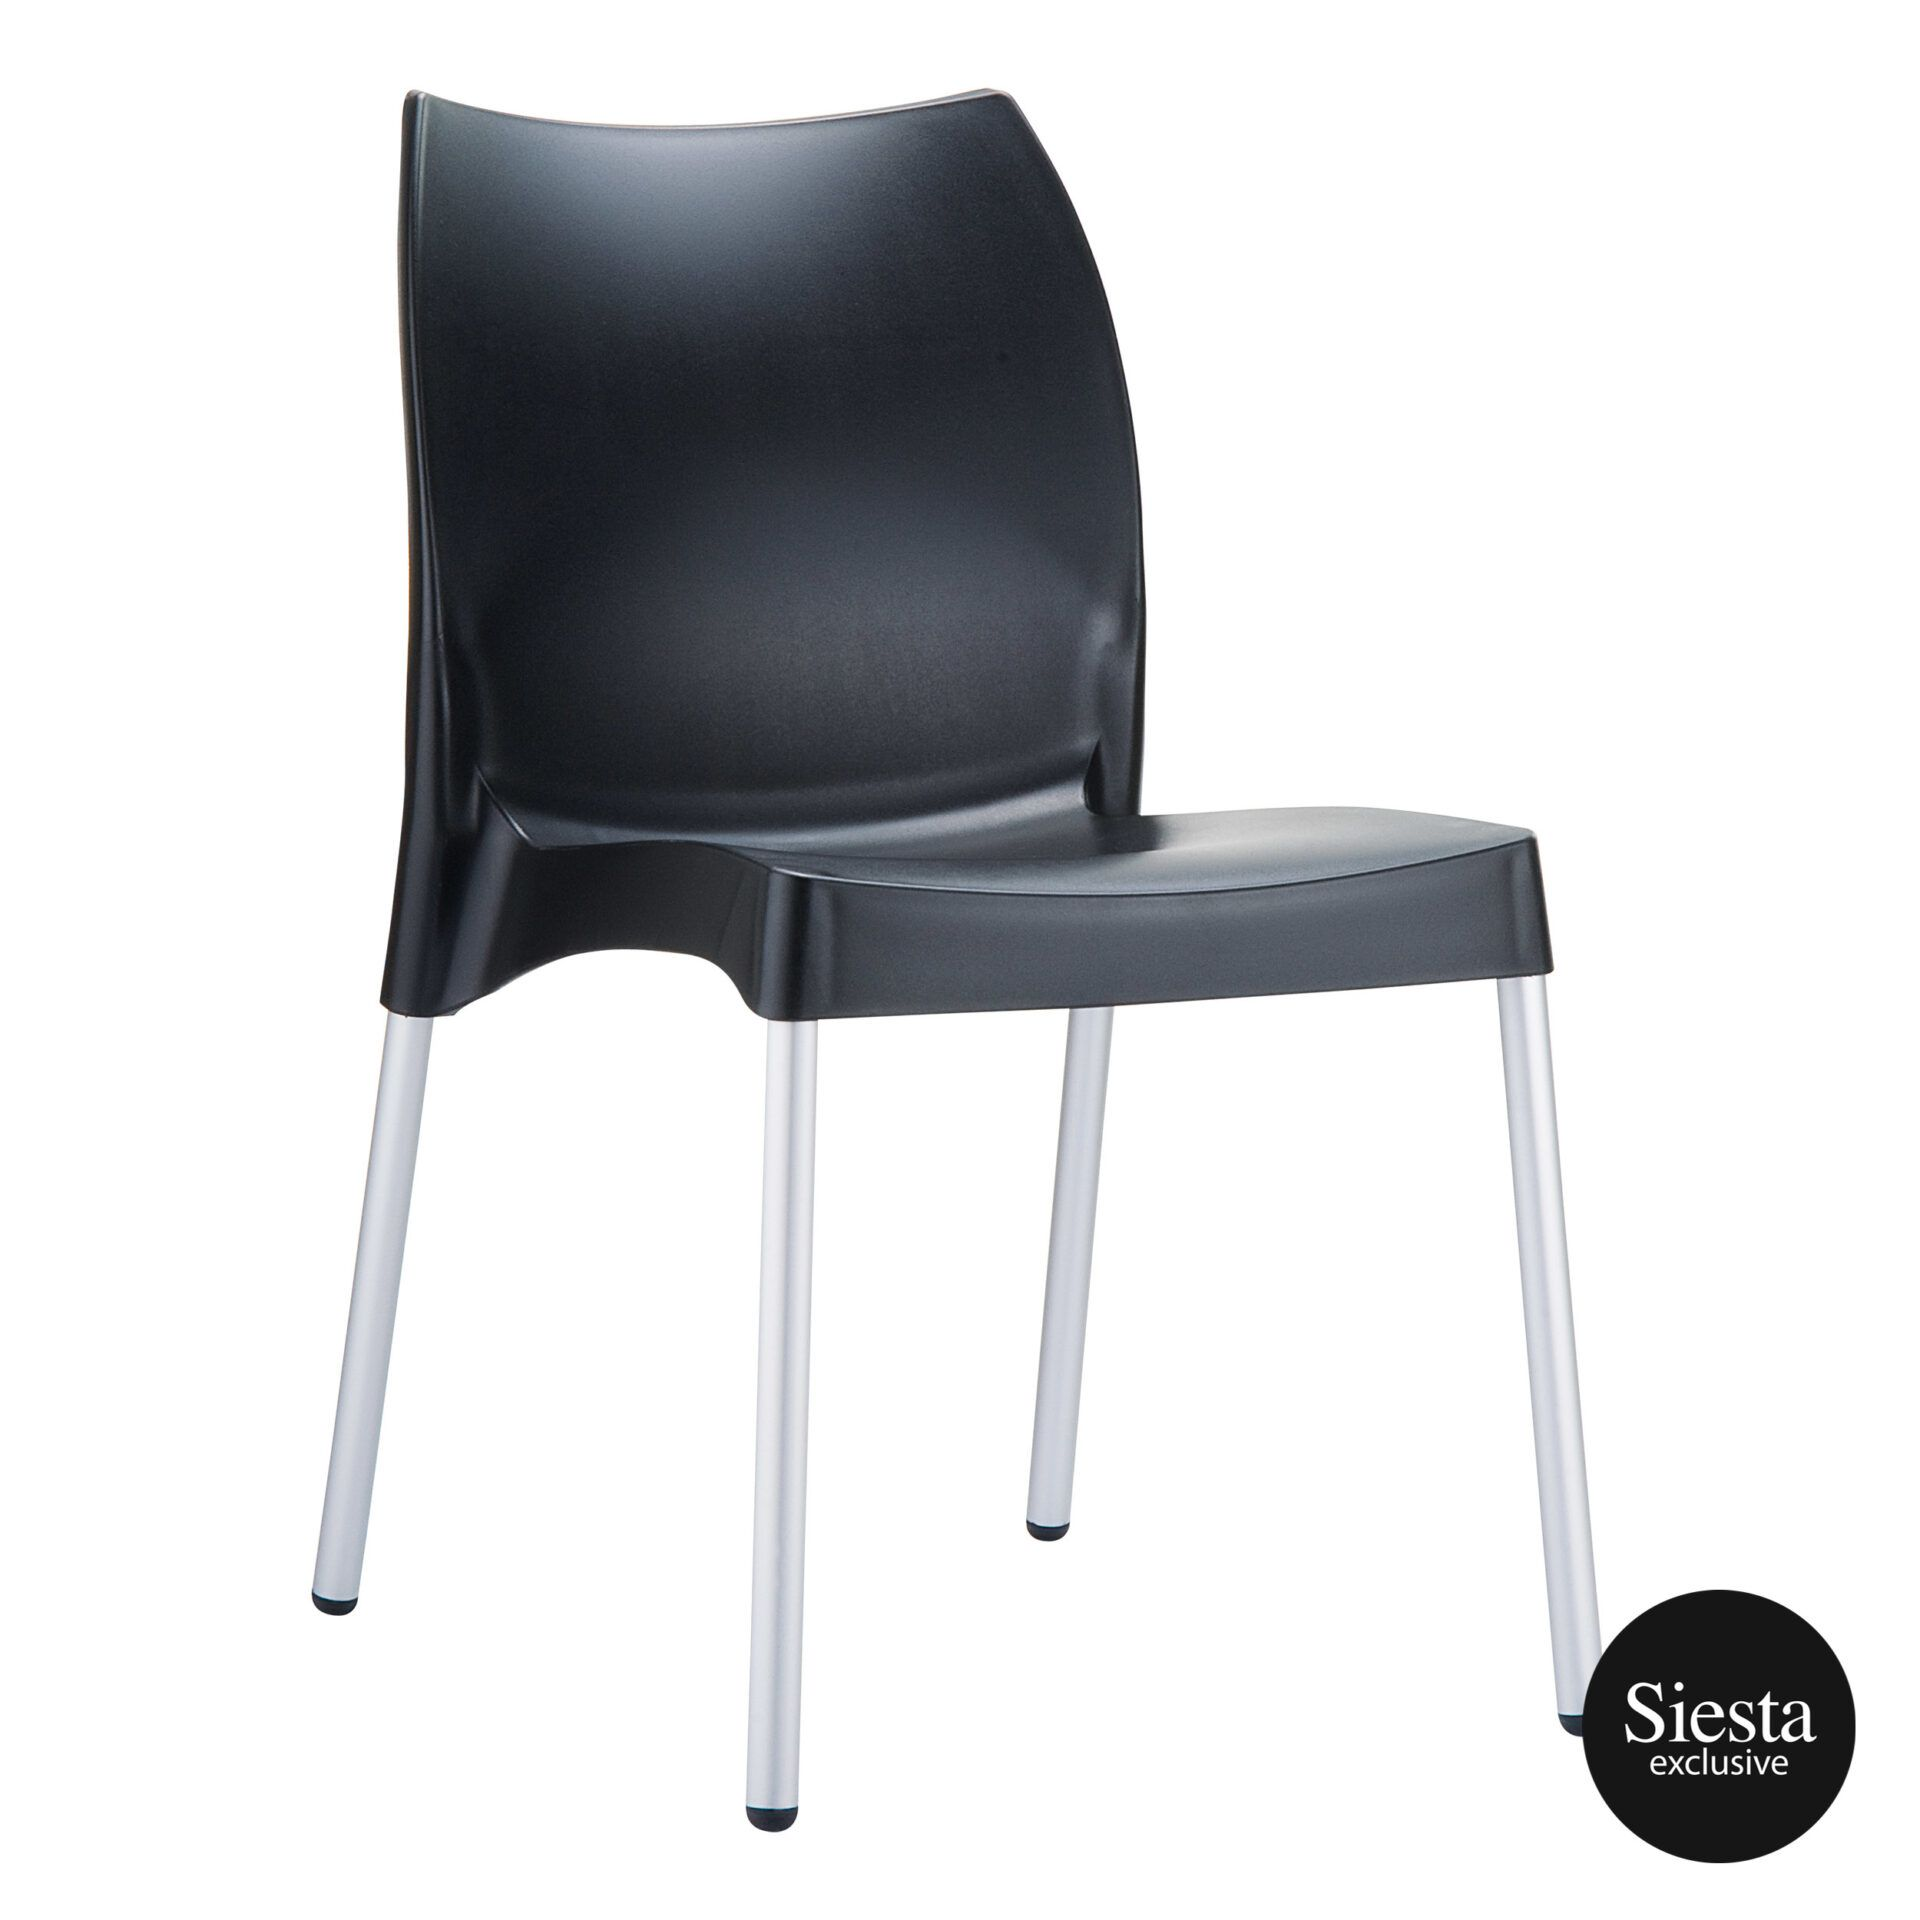 commercial outdoor hospitality seating vita chair black front side 1